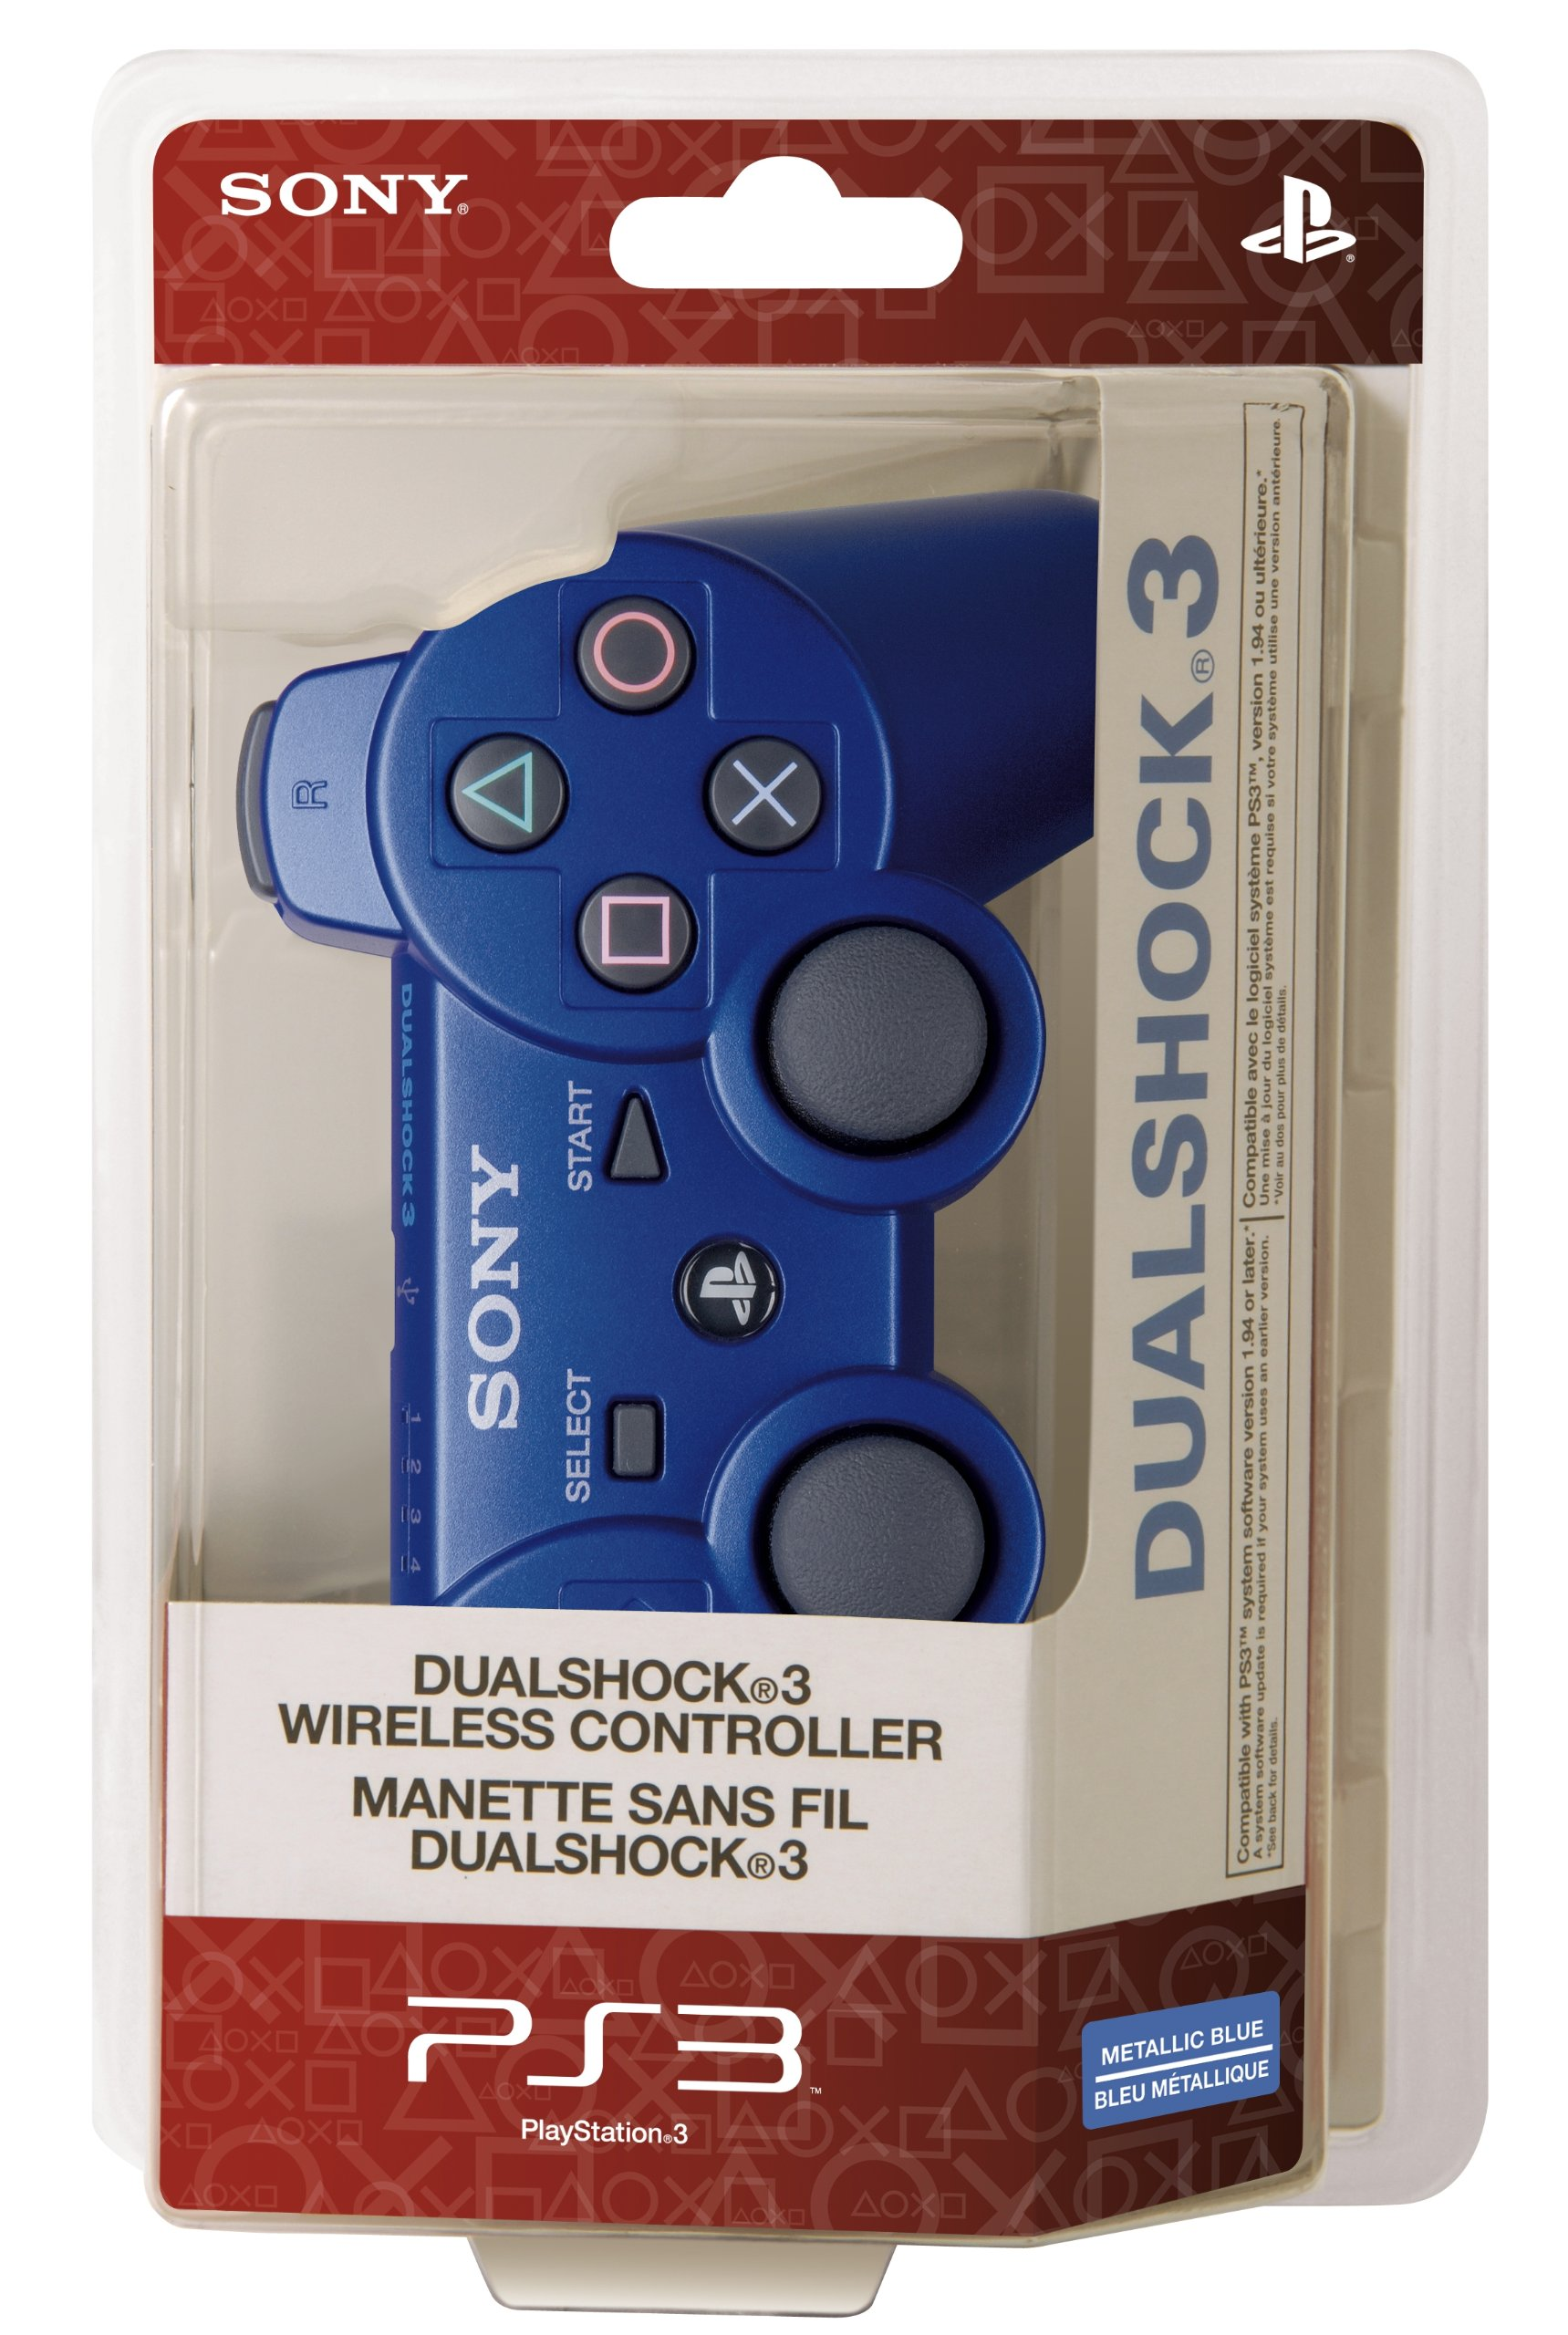 PlayStation 3 Dualshock 3 Wireless Controller (Blue) by Sony